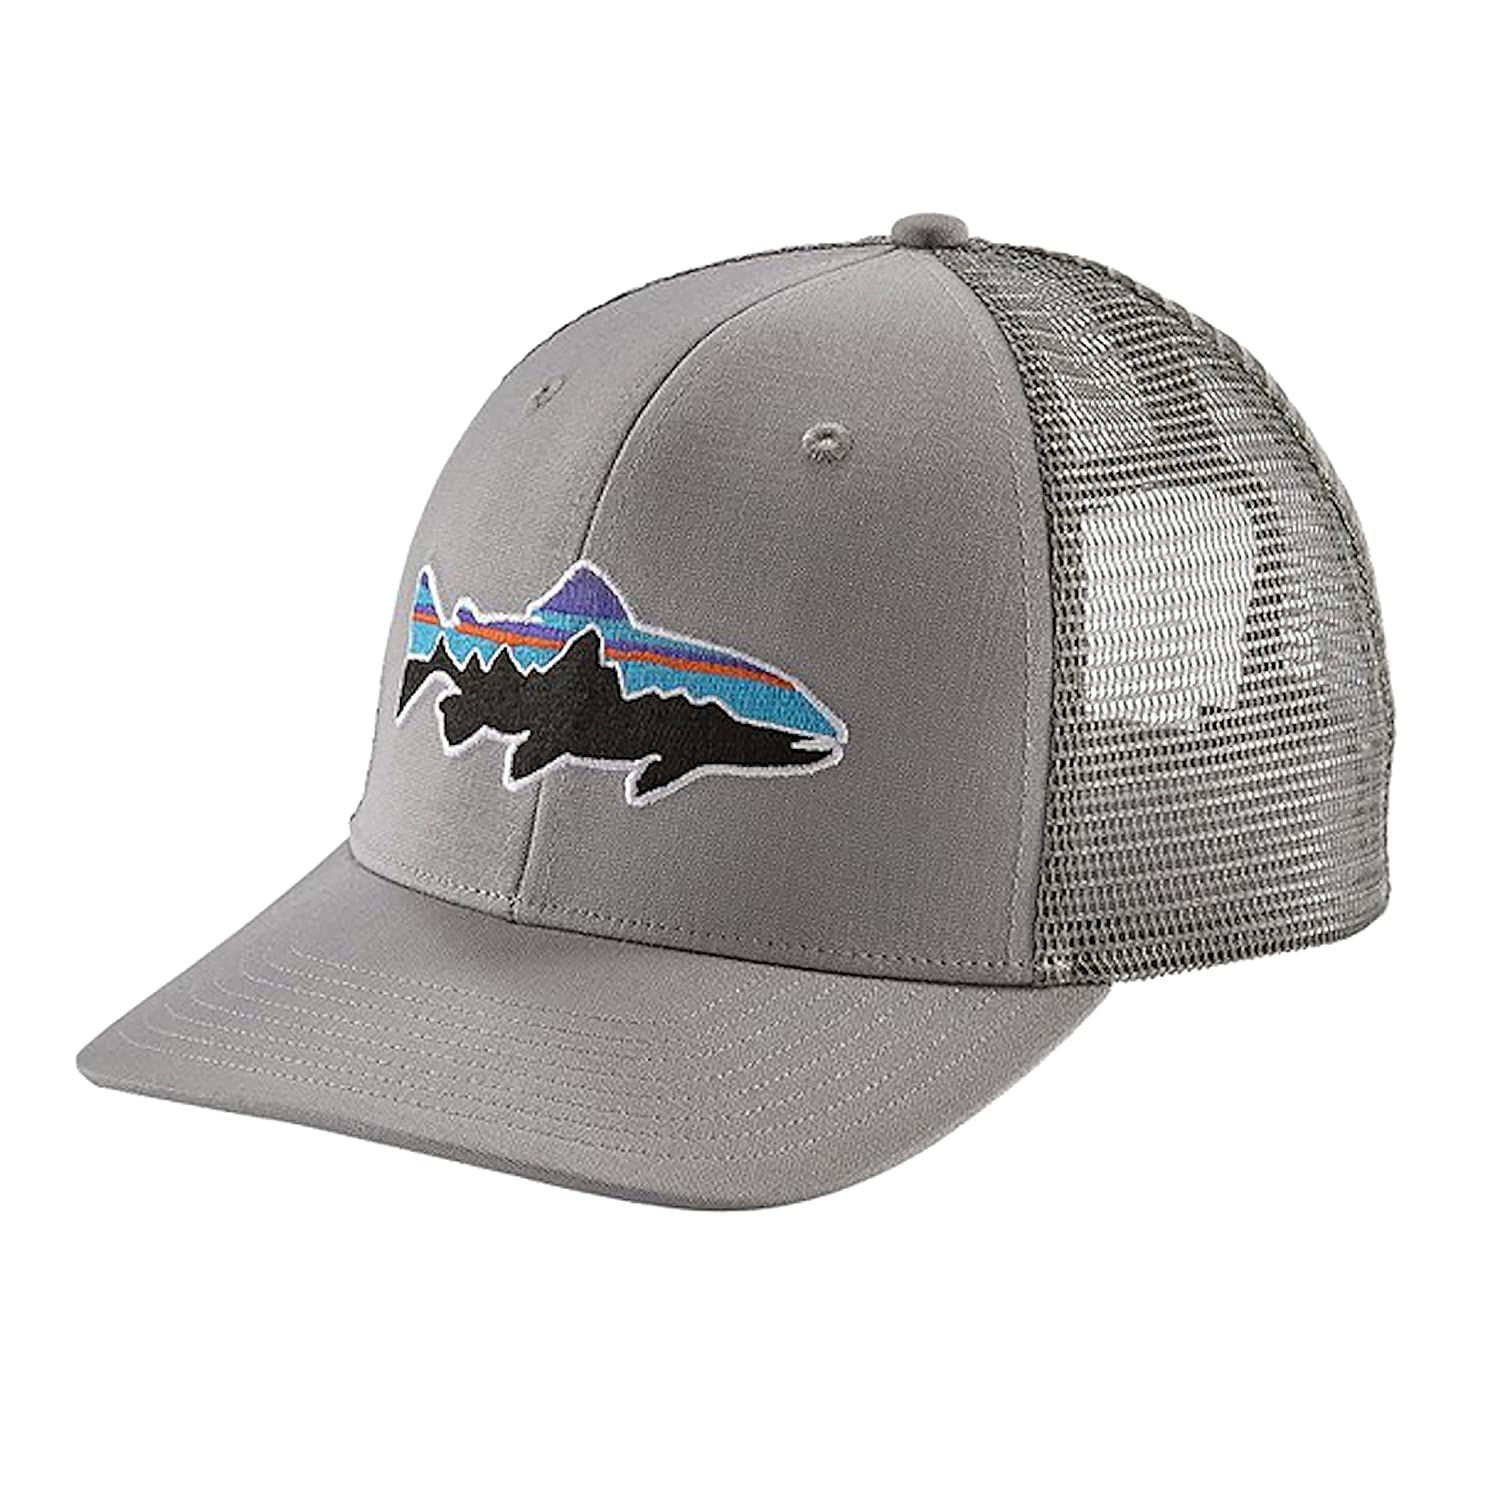 Patagonia Fitz Roy Trout Trucker Hat B01NCZH0FA One Size Drifter Grey Drifter Grey One Size